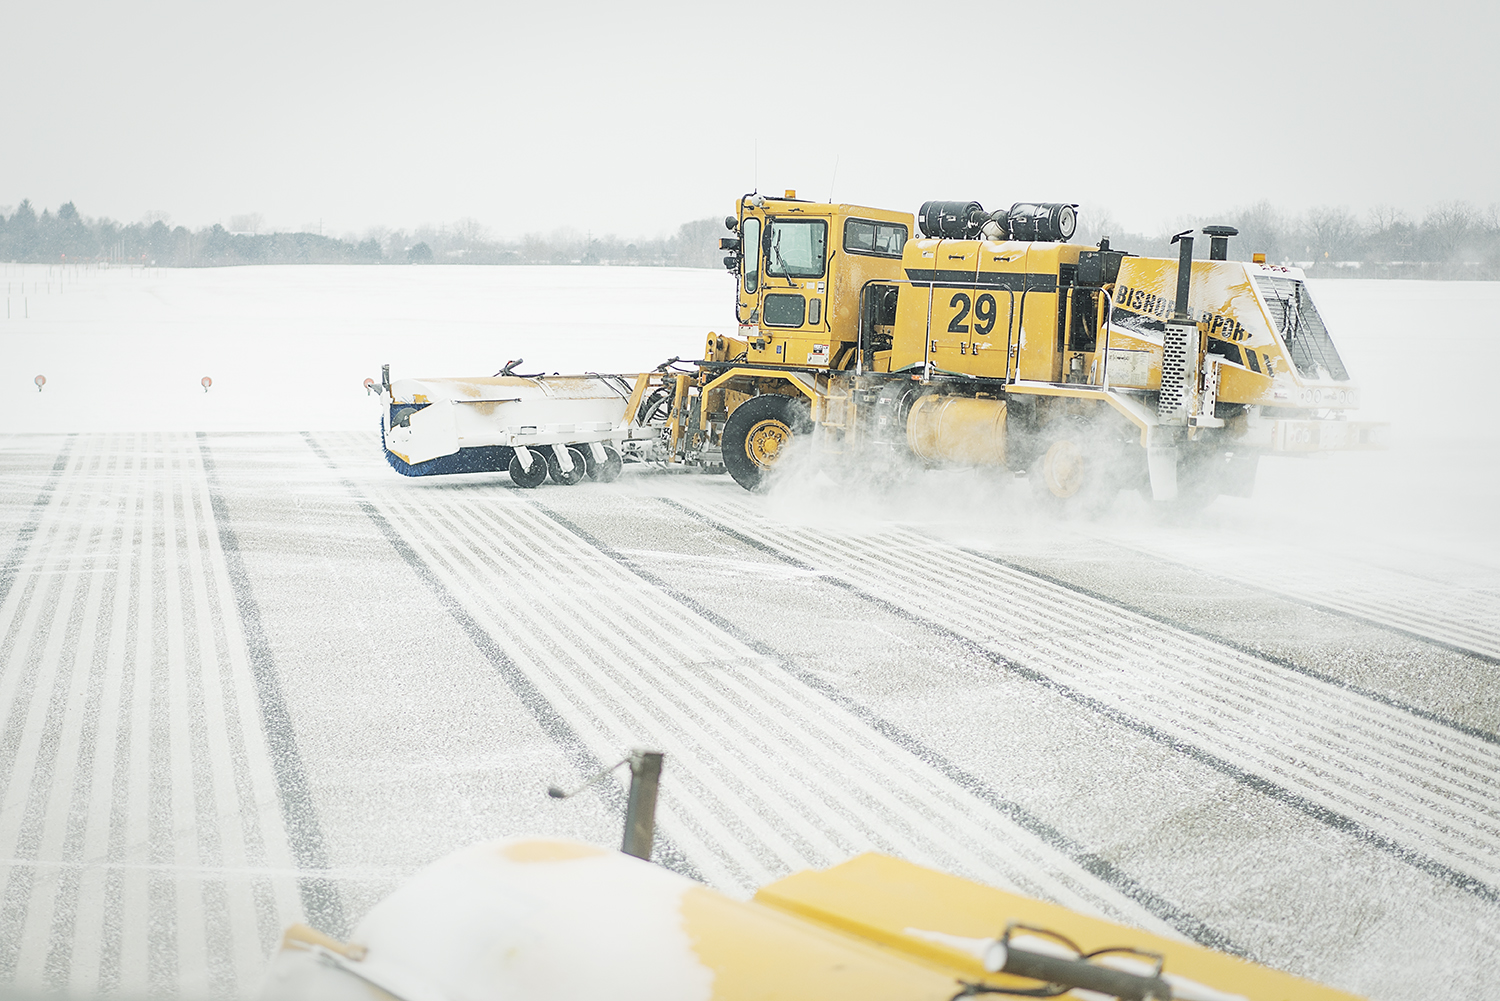 Flint, MI - Wednesday, January 3, 2018: A broom truck, using massive brushes and a blower clears snow from the runway at Bishop International Airport.Tim Galloway for FlintSide